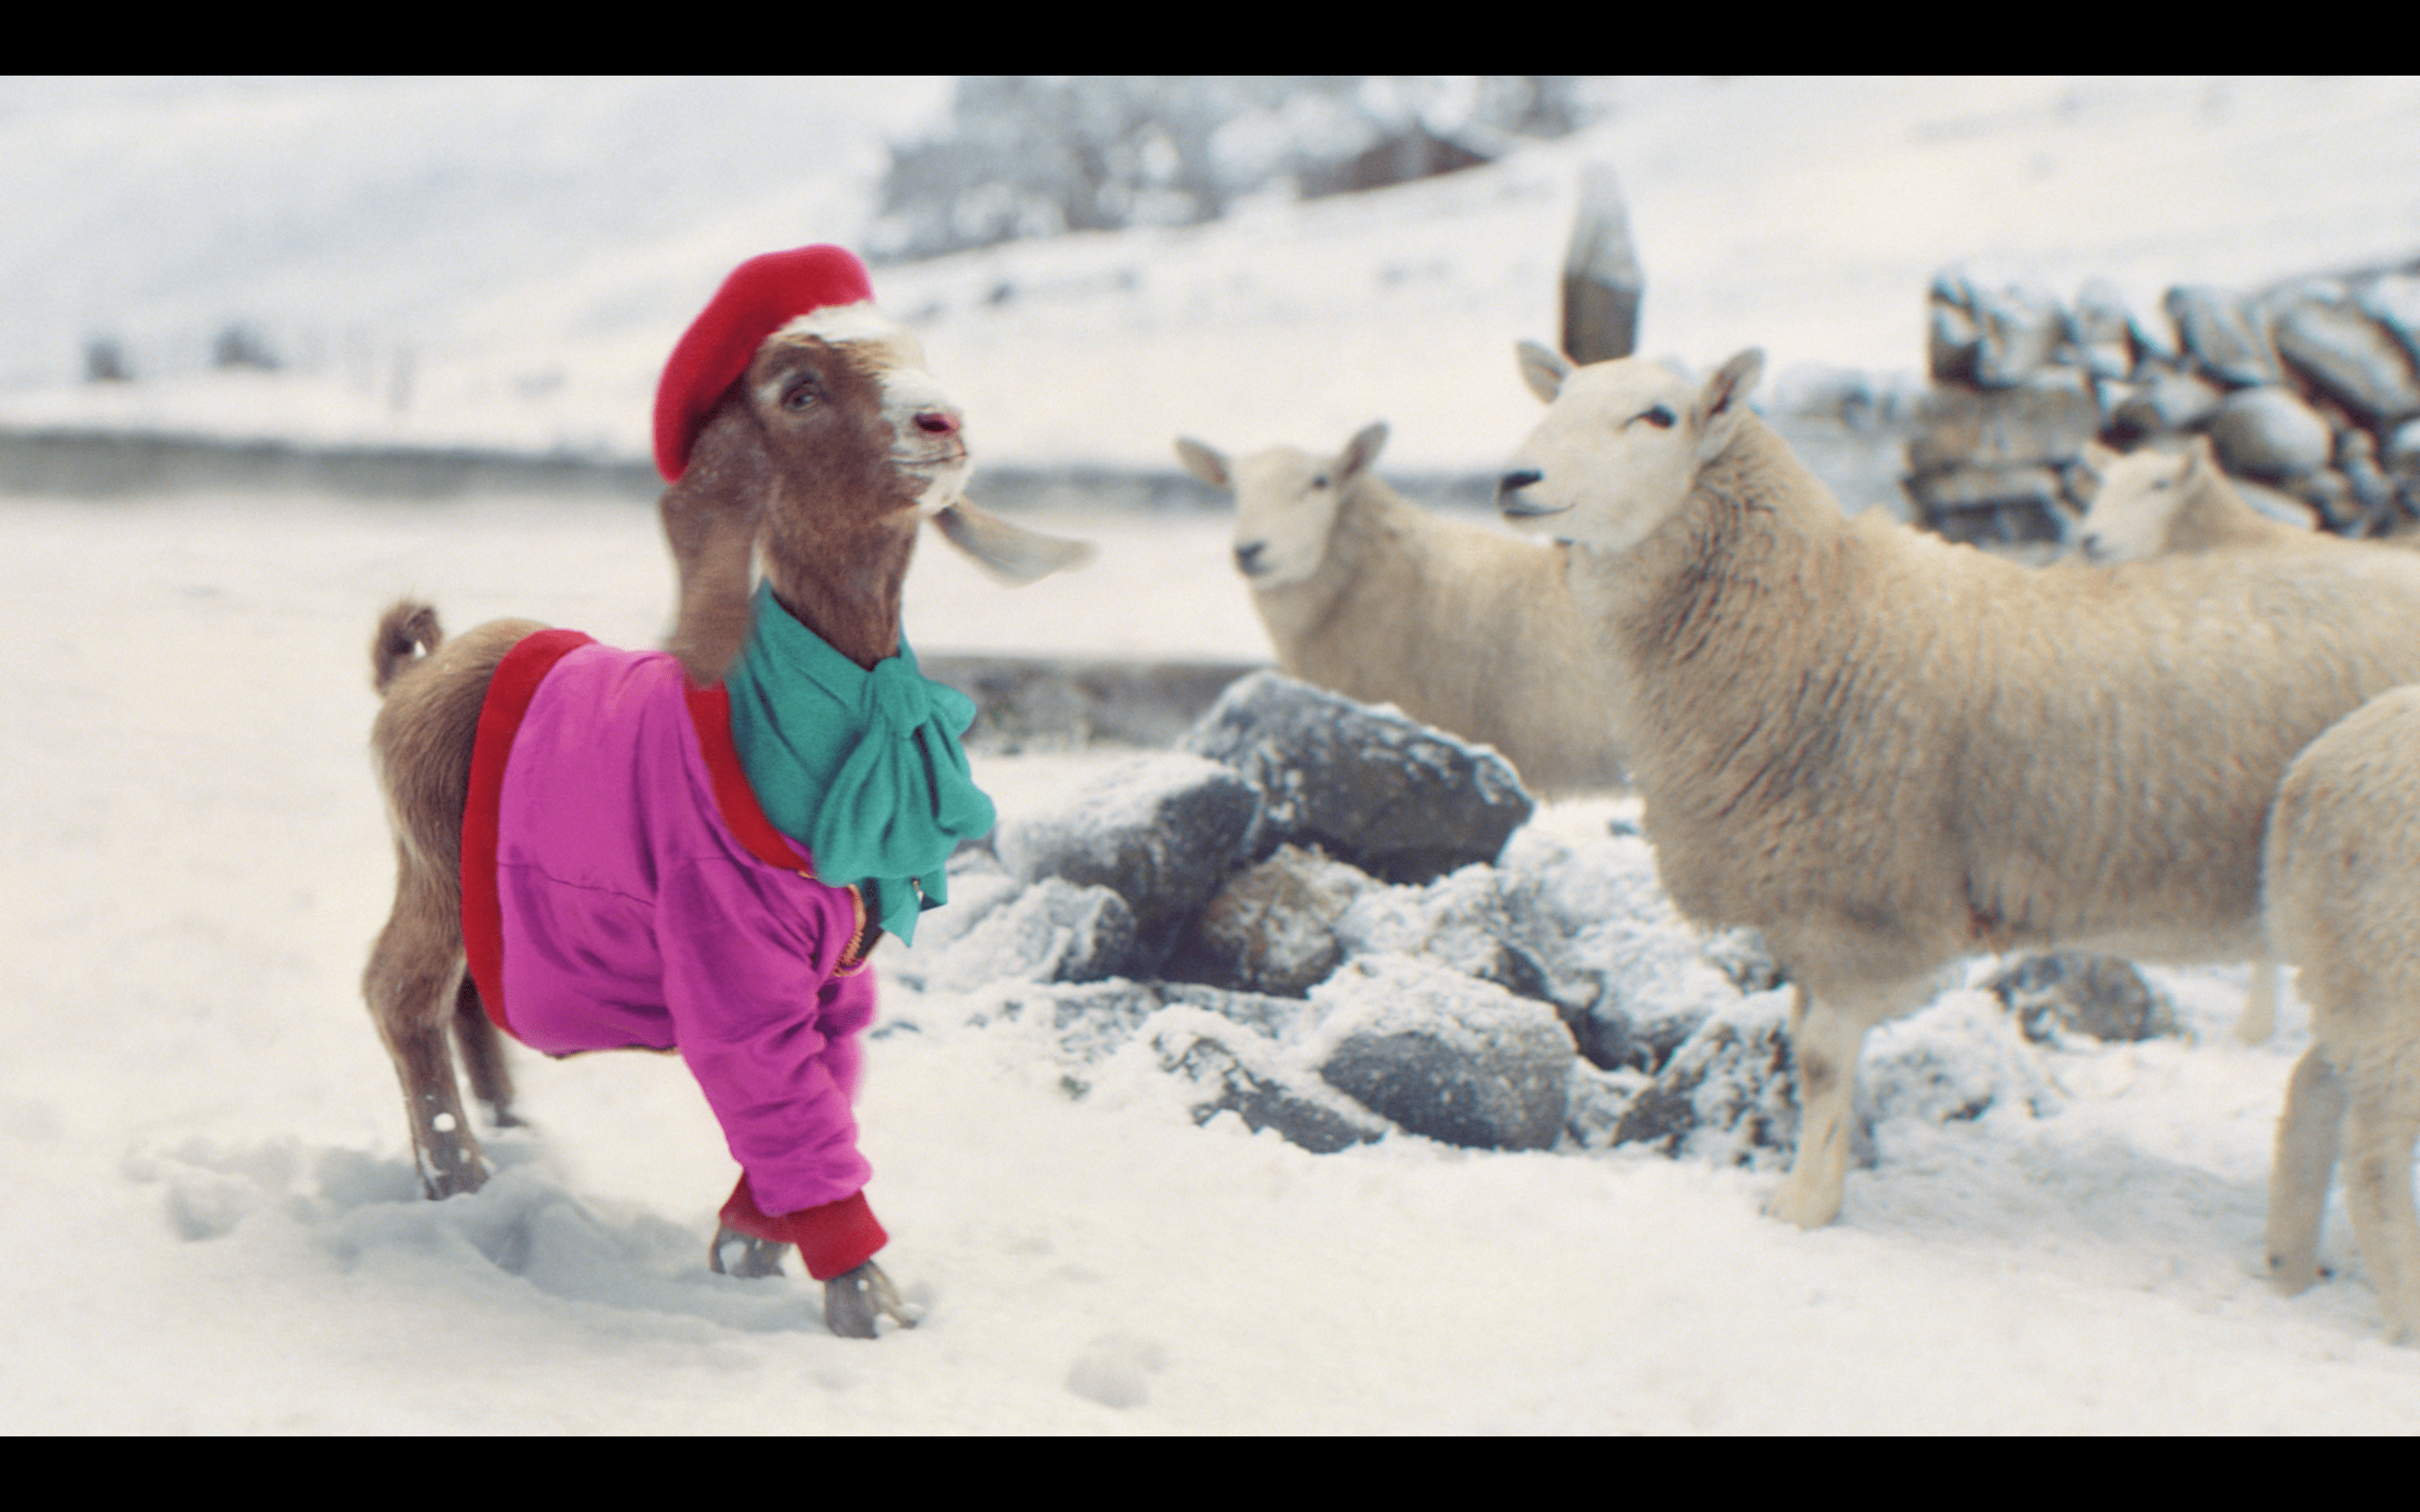 The advert features Lil' Goat strutting her stuff